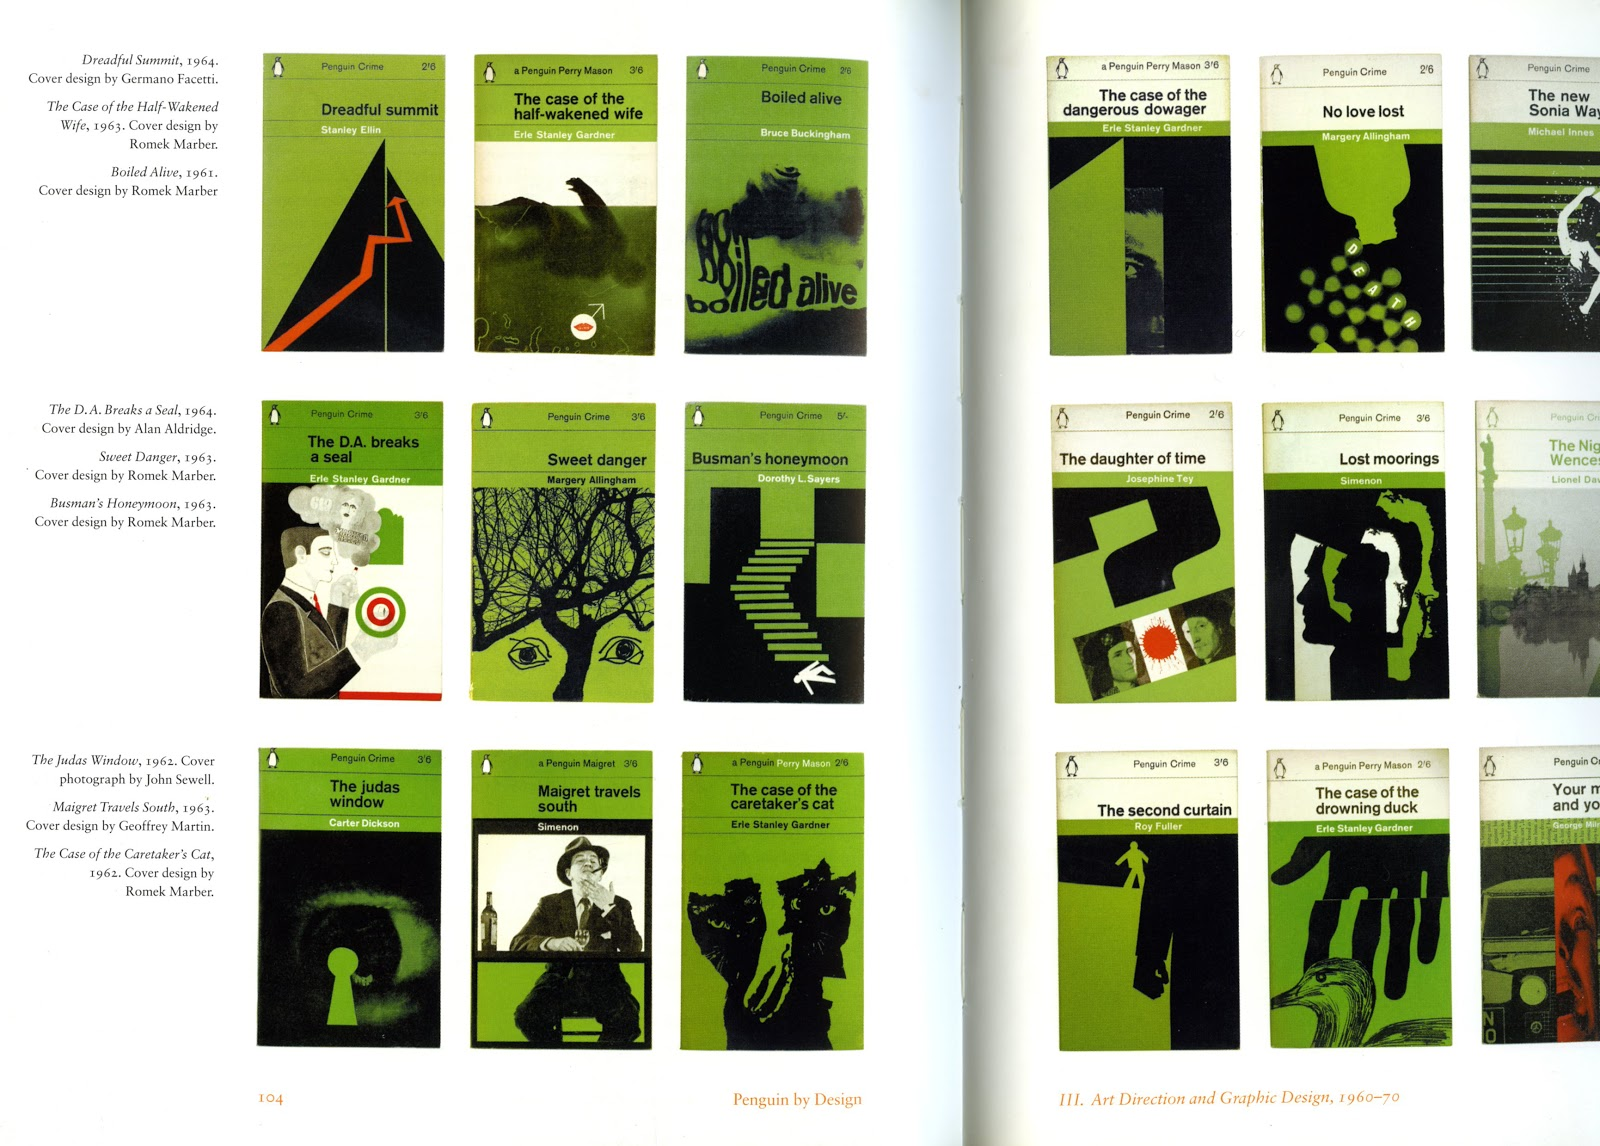 Penguin Book Cover Design : Design context a brief history penguin book covers